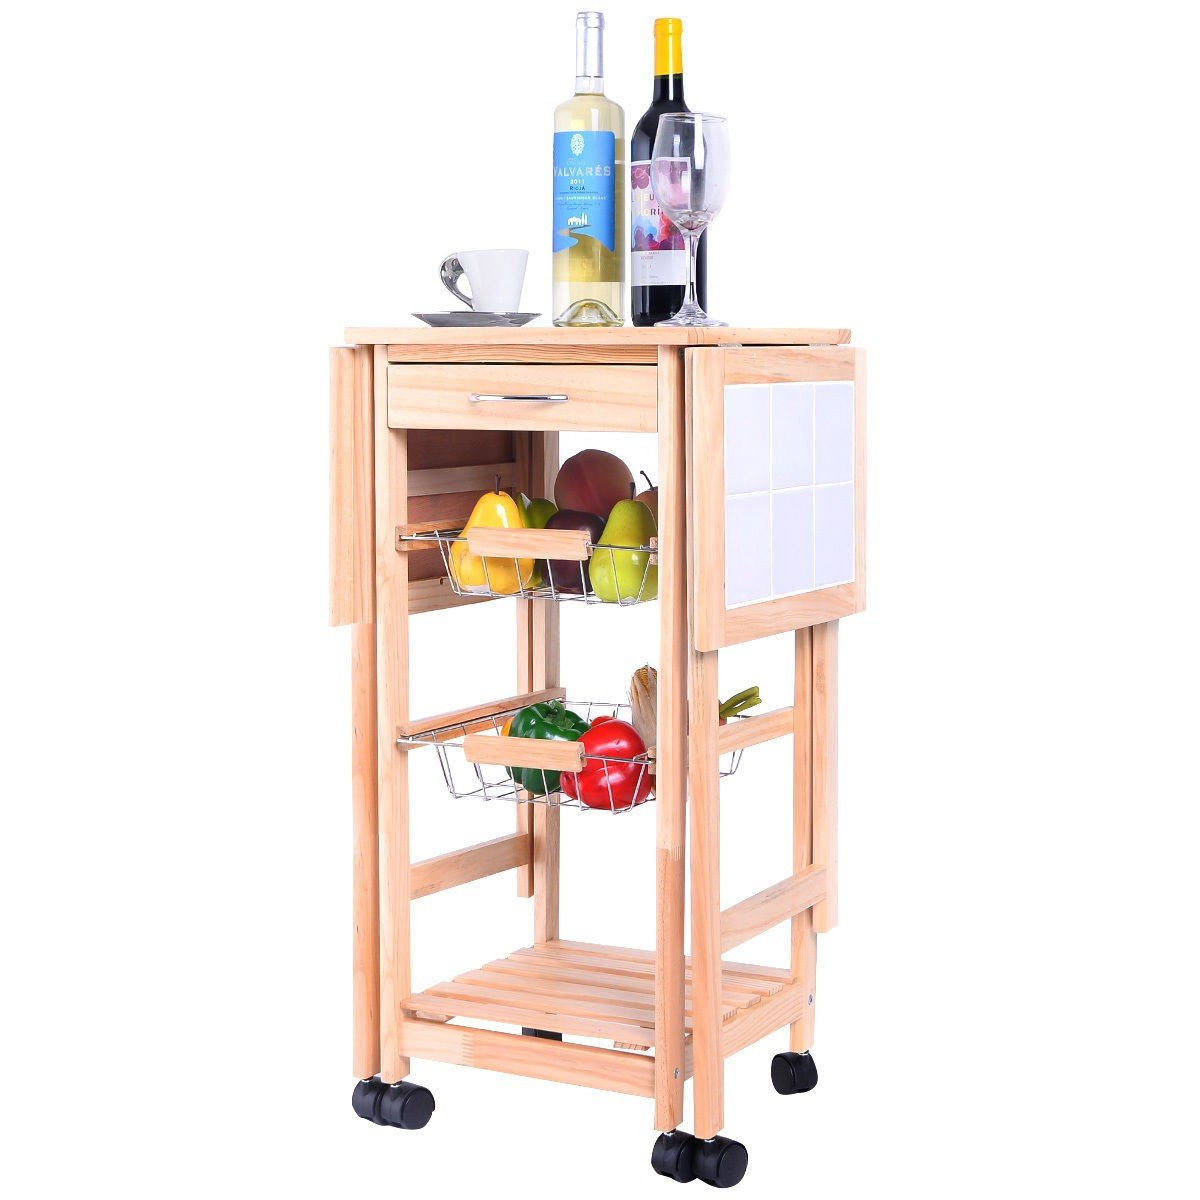 3-Tier Rolling Kitchen Trolley Cart – By Choice Products